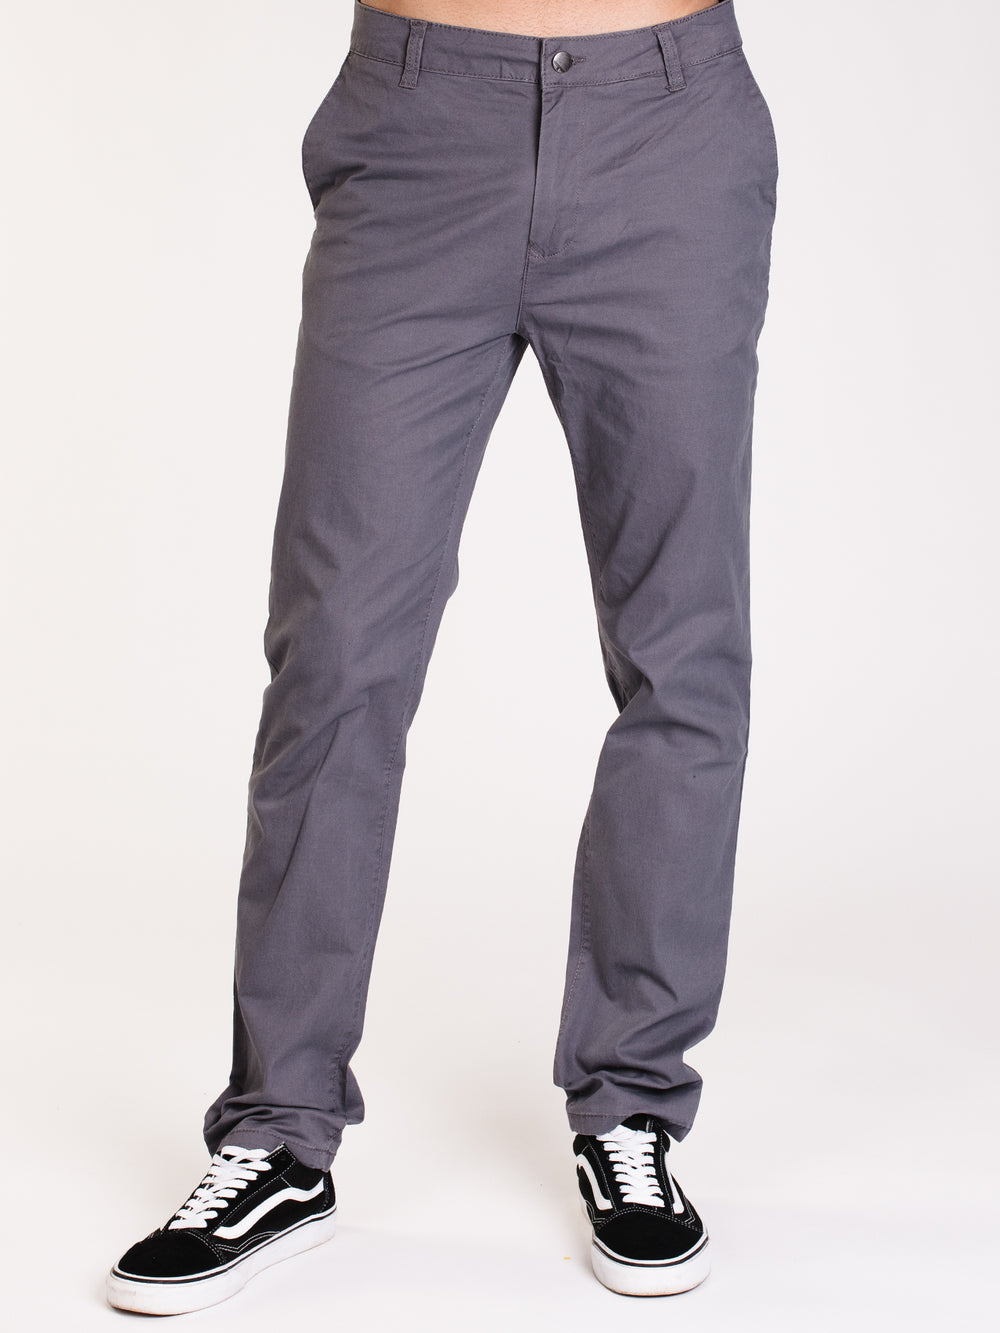 MENS SPRING SLIM CHINO - GRAVEL - CLEARANCE